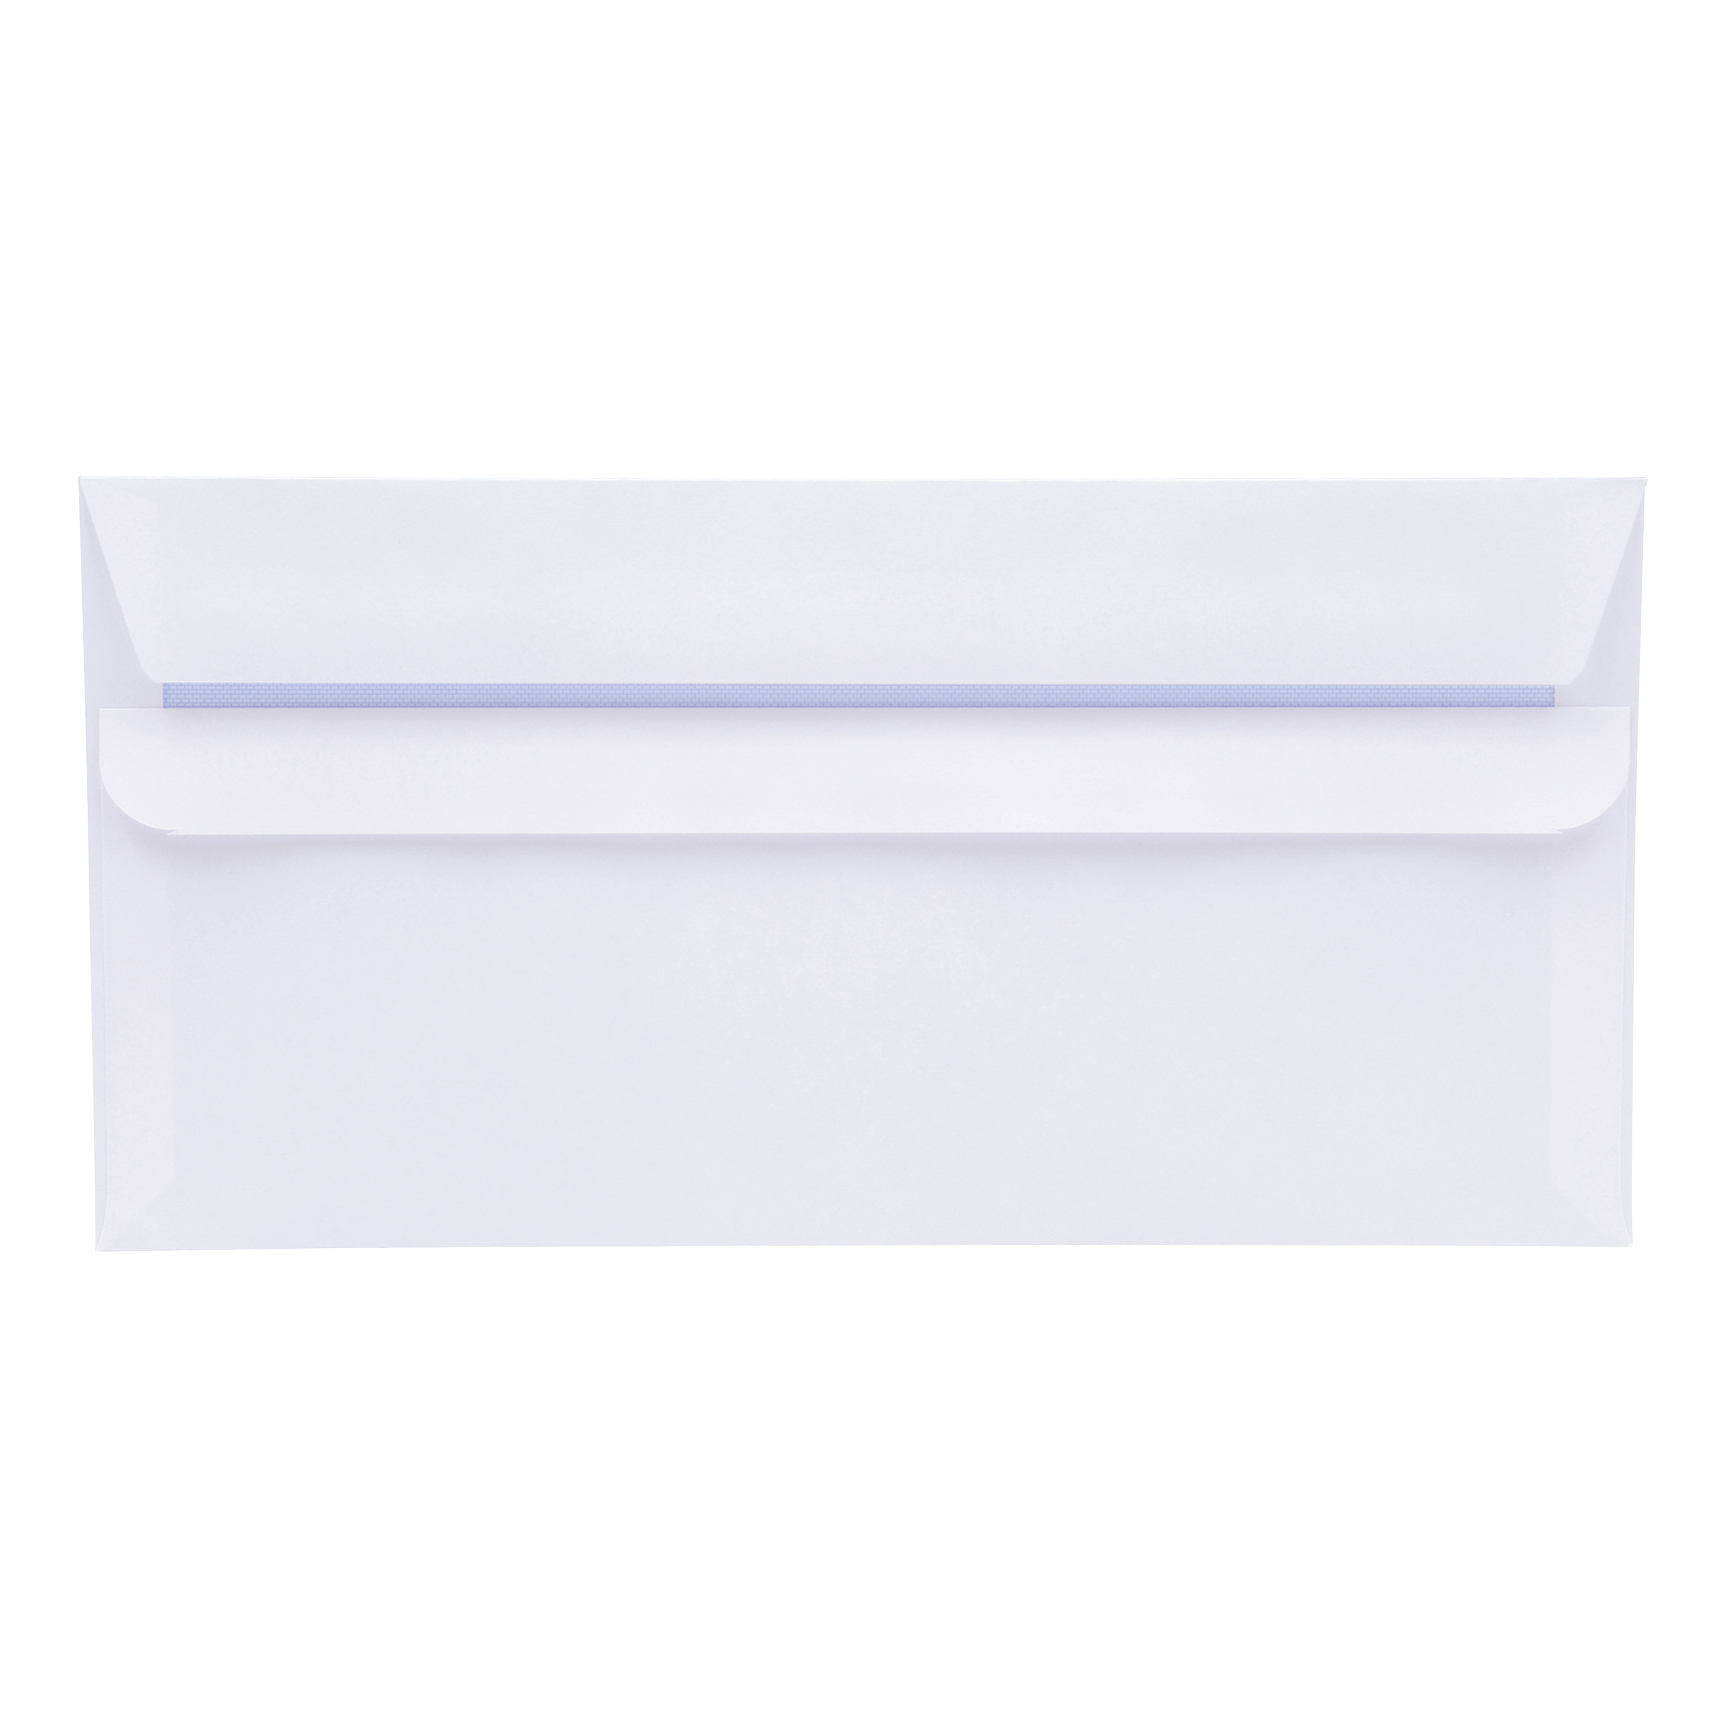 5 Star Office Envelopes PEFC Wallet Self Seal 90gsm DL 220x110mm White Pack 1000